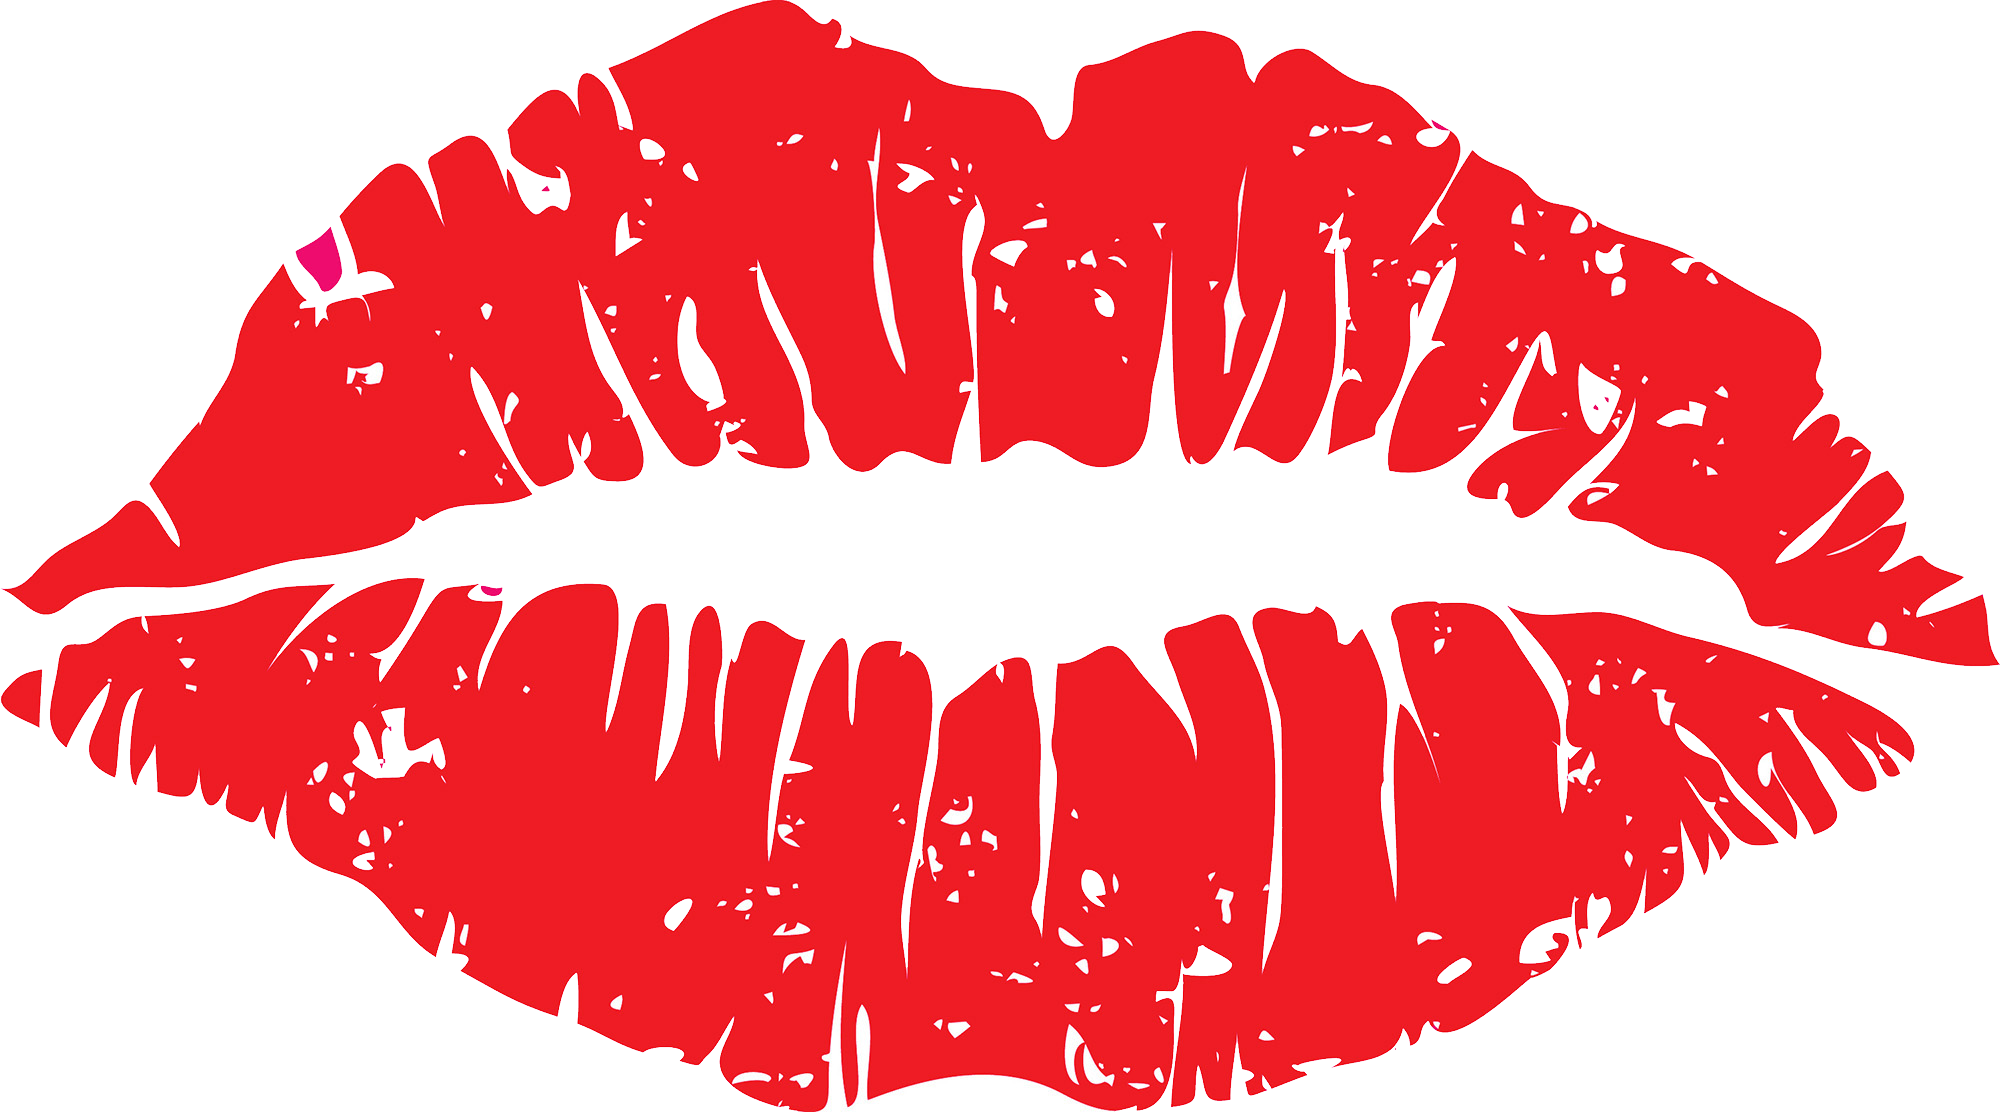 picture Images free download image. Kiss clipart png